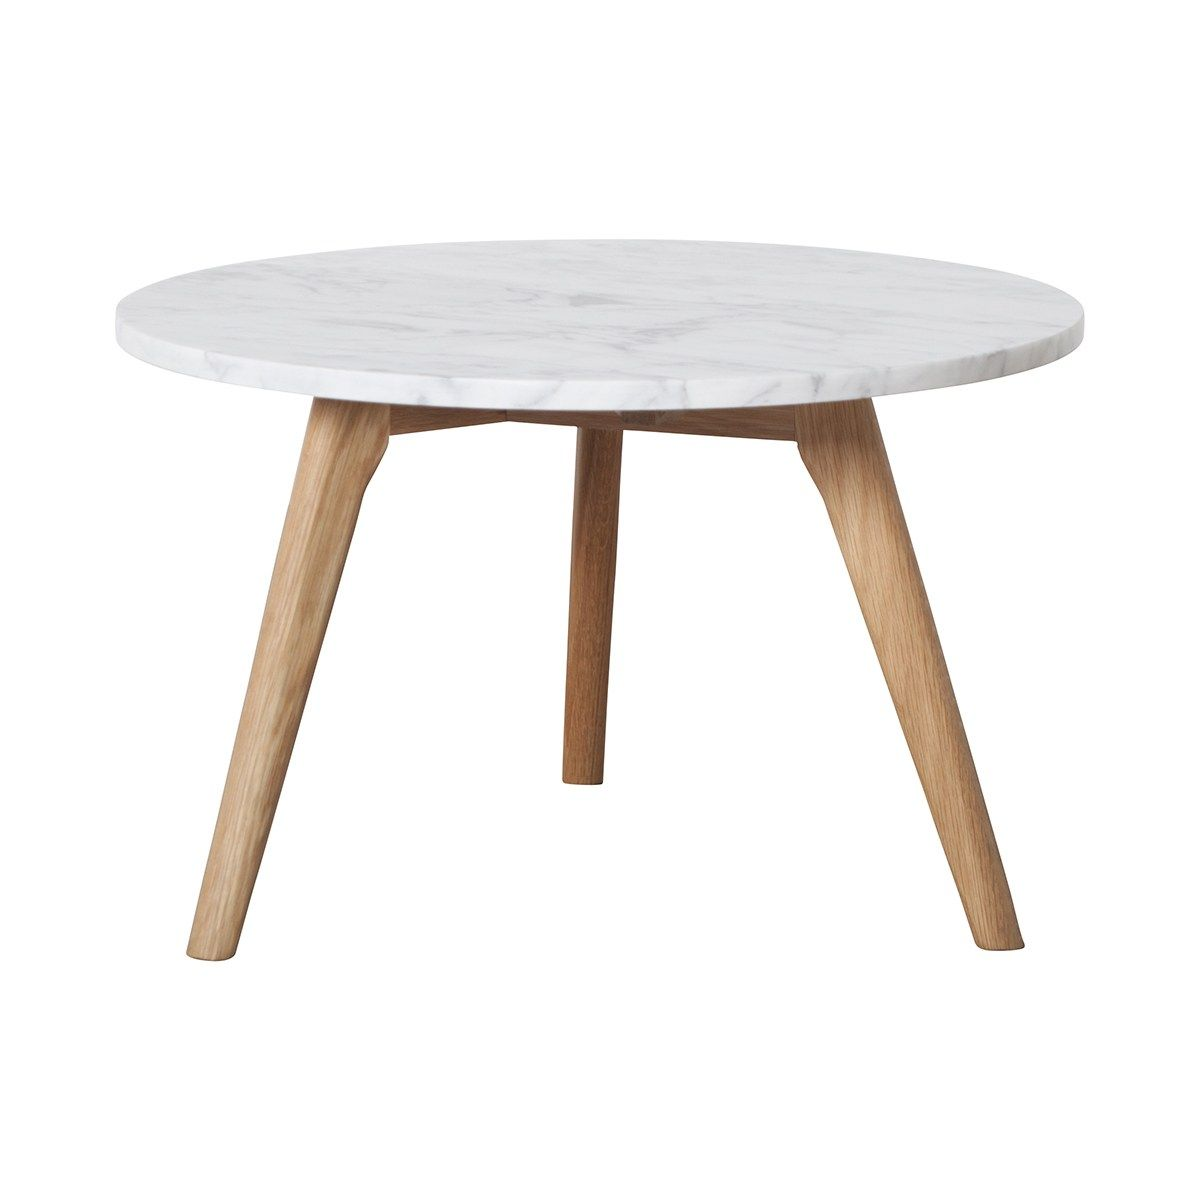 White Stone Side Table Round Coffee Table Modern Table Furniture